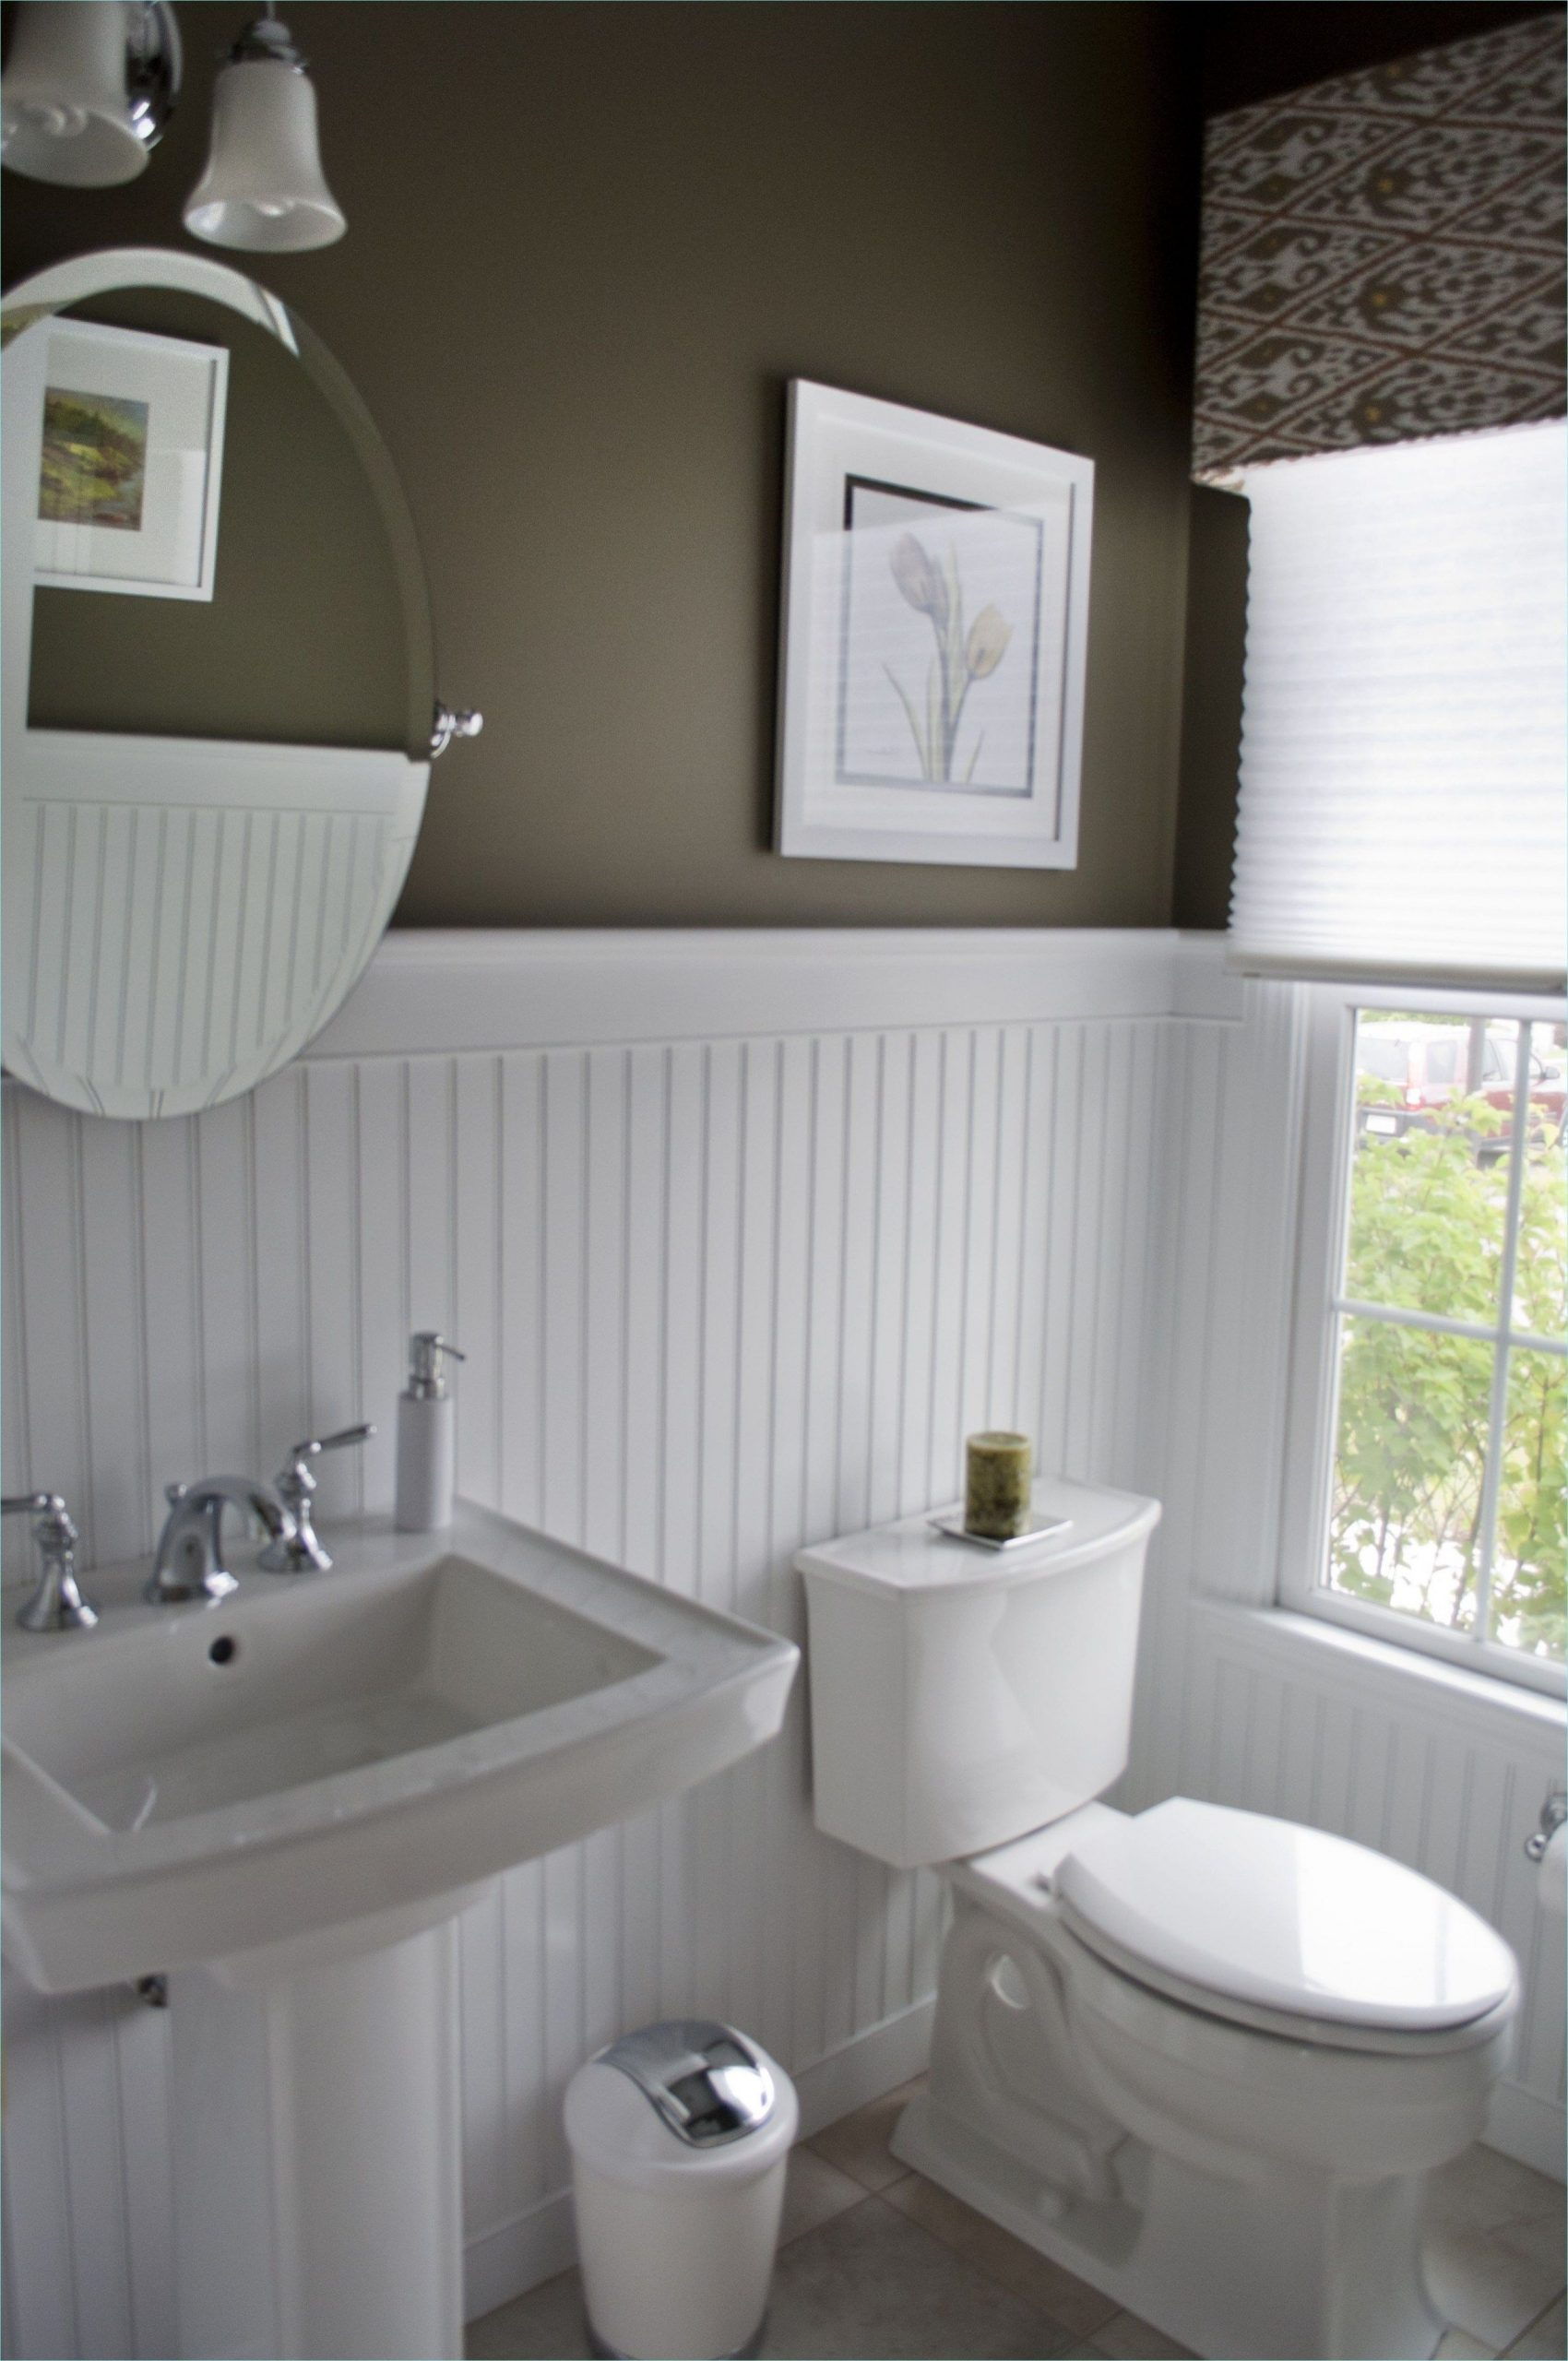 Coolest Small Bathrooms With Wainscoting Decorecord In Wainscoting Bathroom Pictures